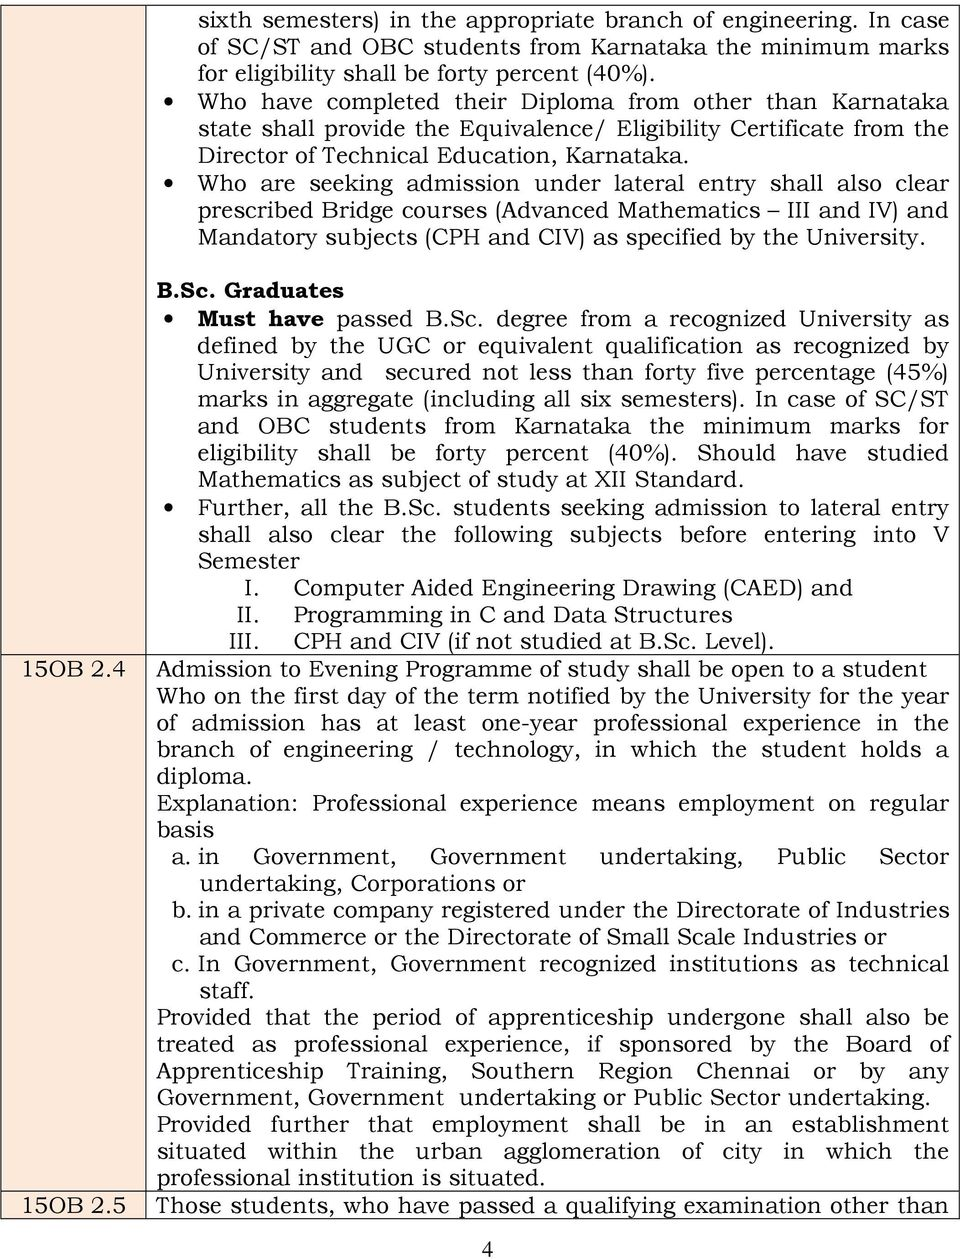 Who are seeking admission under lateral entry shall also clear prescribed Bridge courses (Advanced Mathematics III and IV) and Mandatory subjects (CPH and CIV) as specified by the University. B.Sc.